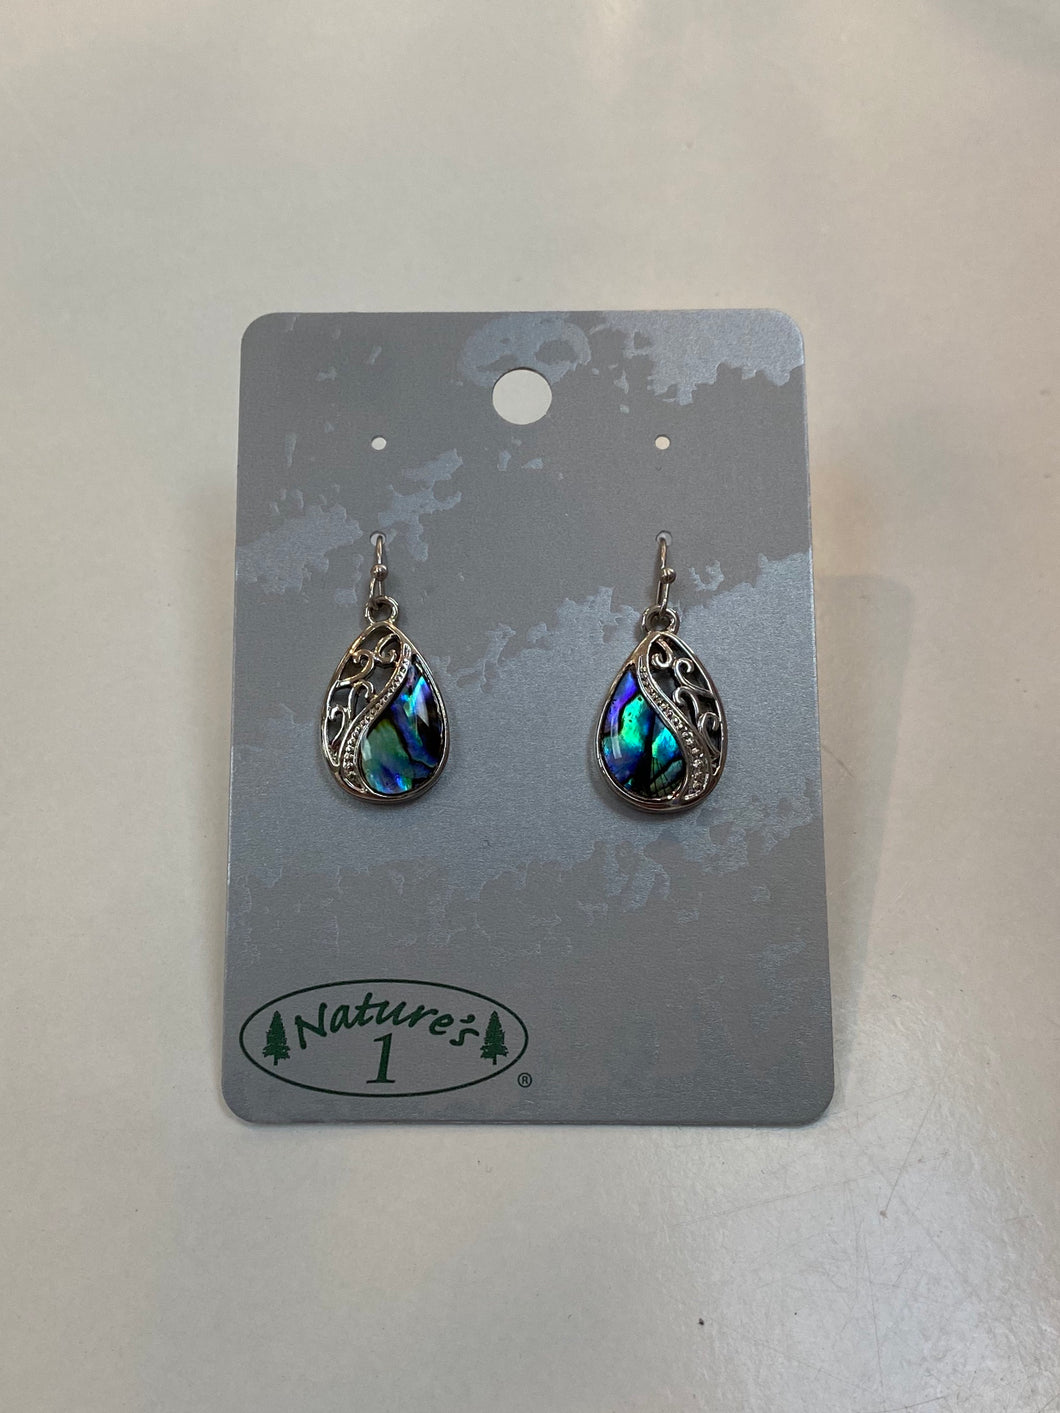 Earrings - WME 160 - Teardrop